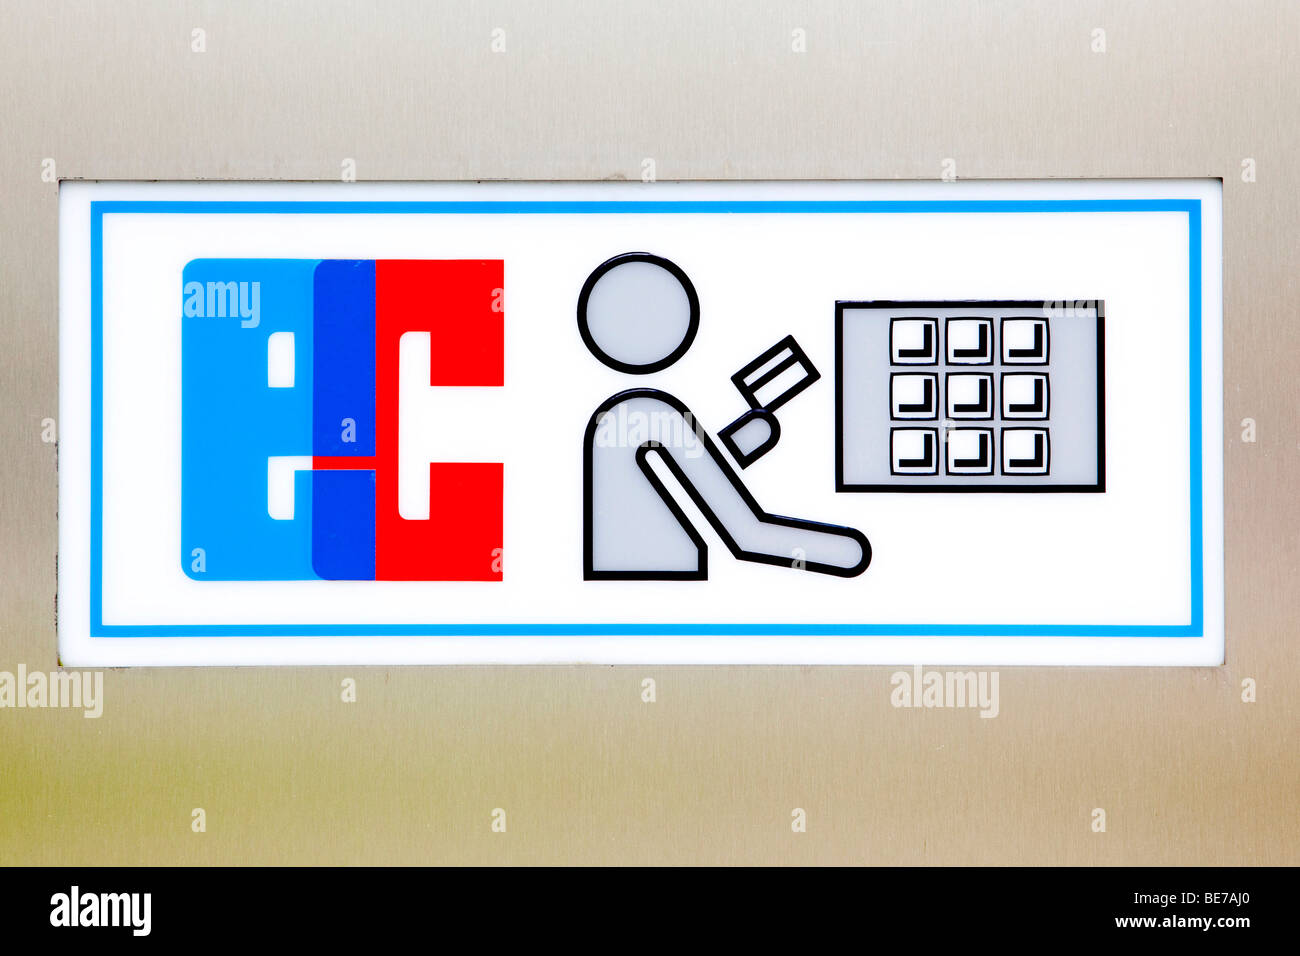 Sign for an EC cashpoint - Stock Image